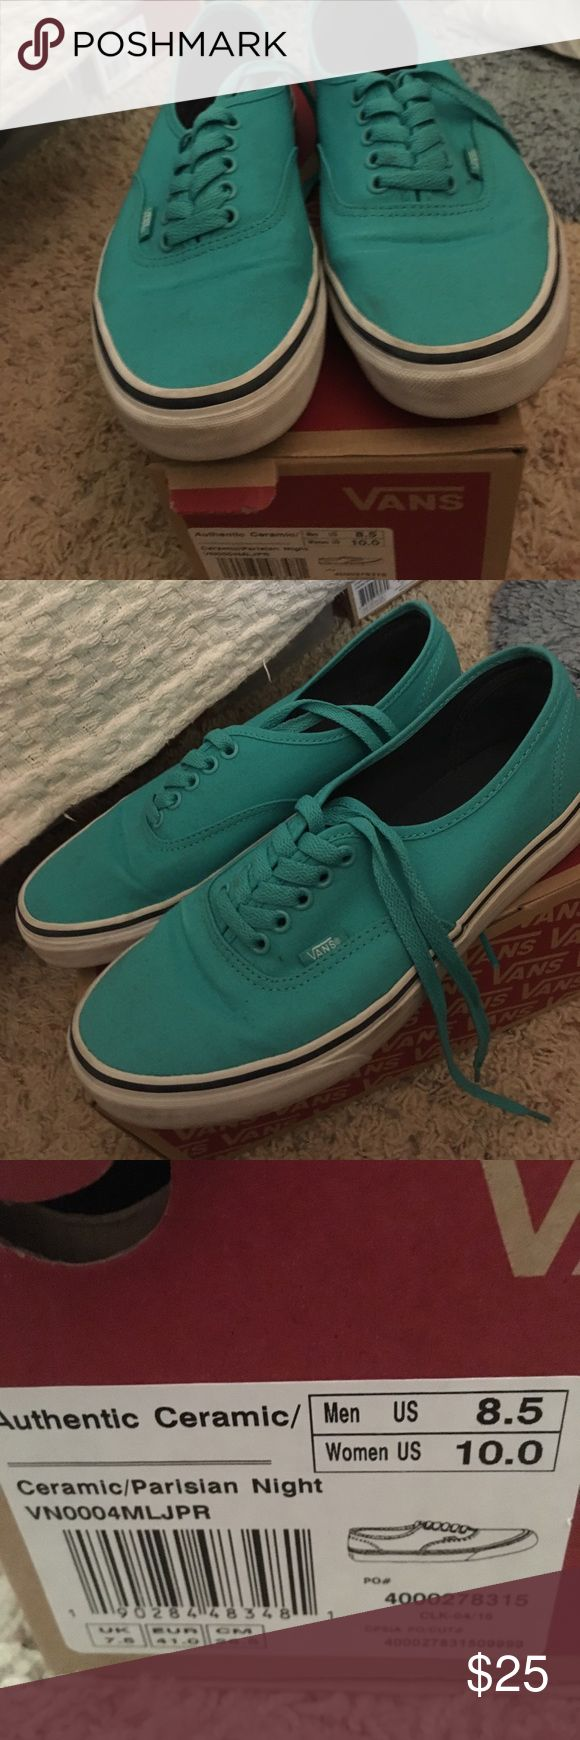 Authentic Teal Vans Worn a few times but in great condition Vans Shoes Athletic Shoes